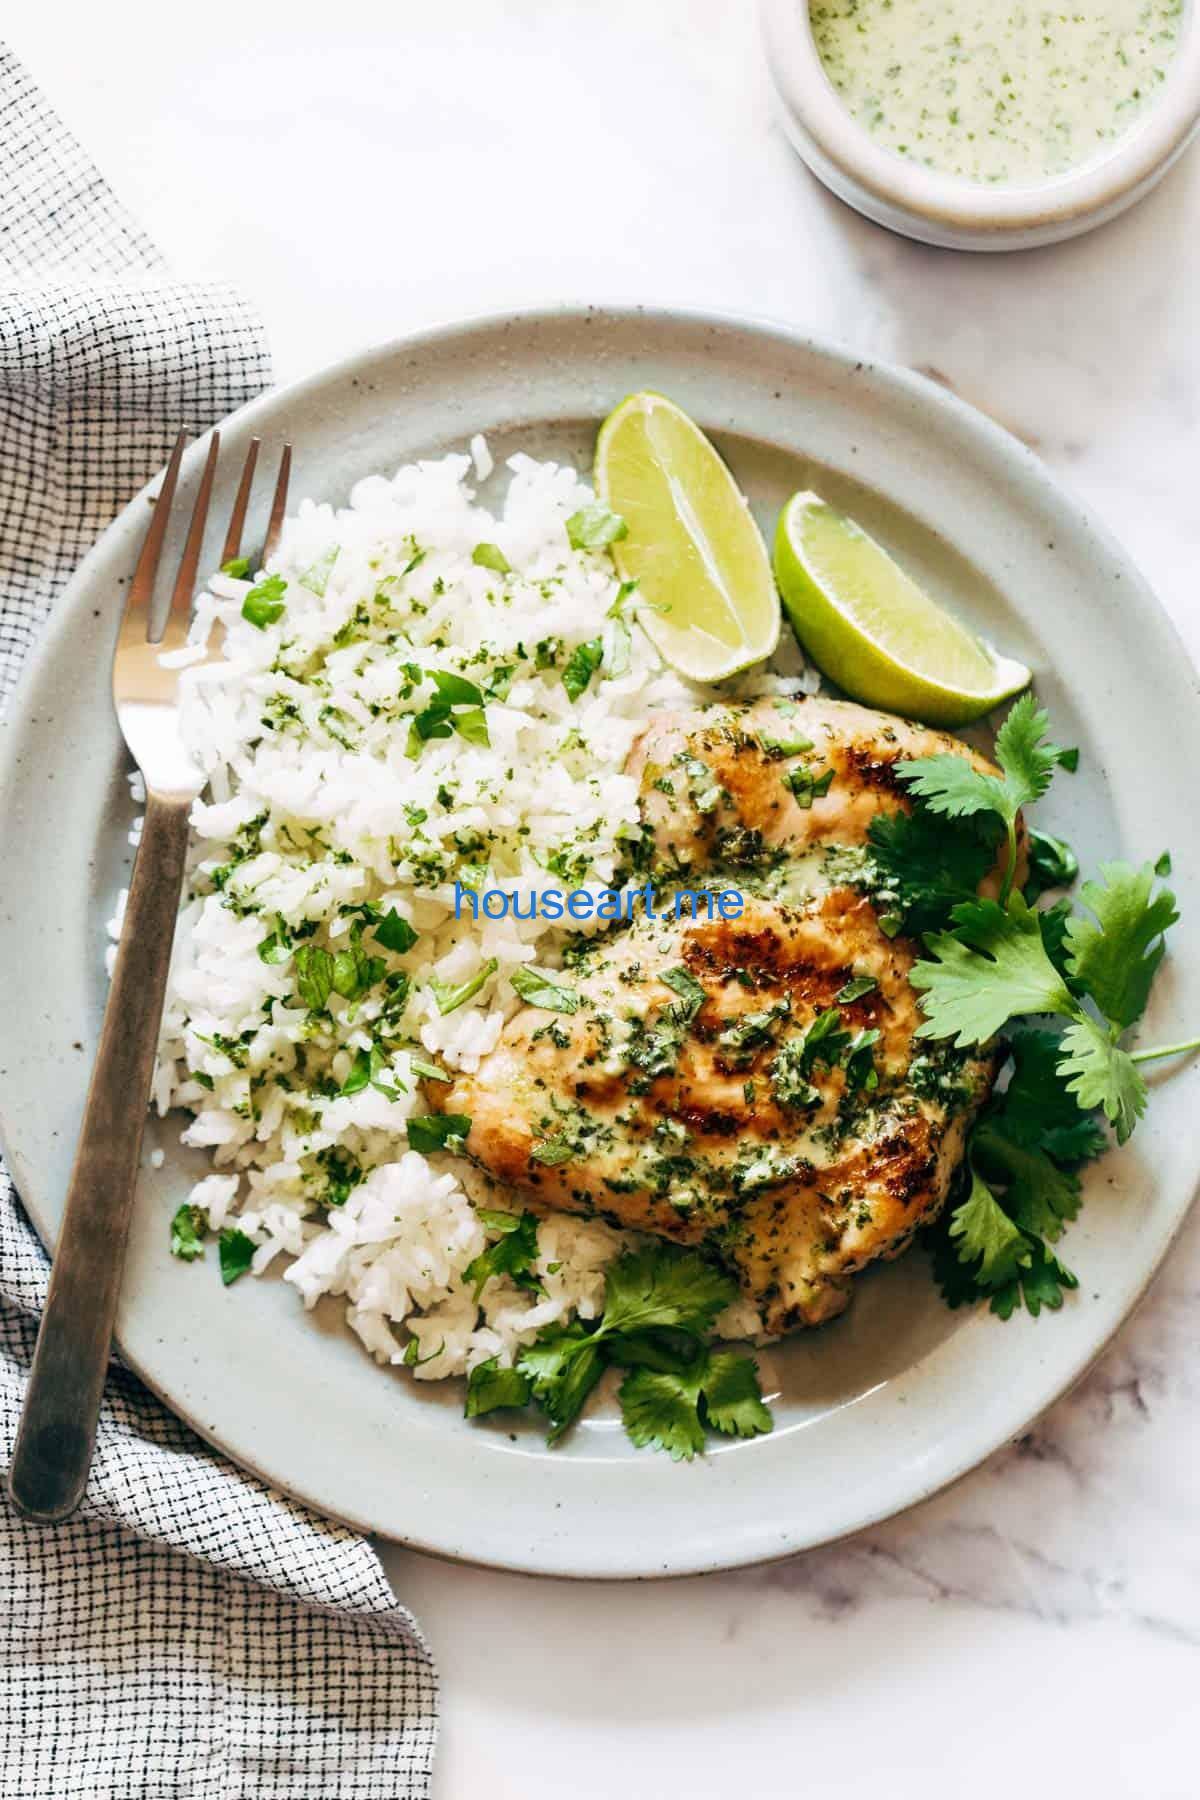 Coconut Lime Grilled chicken with rice on a plate.